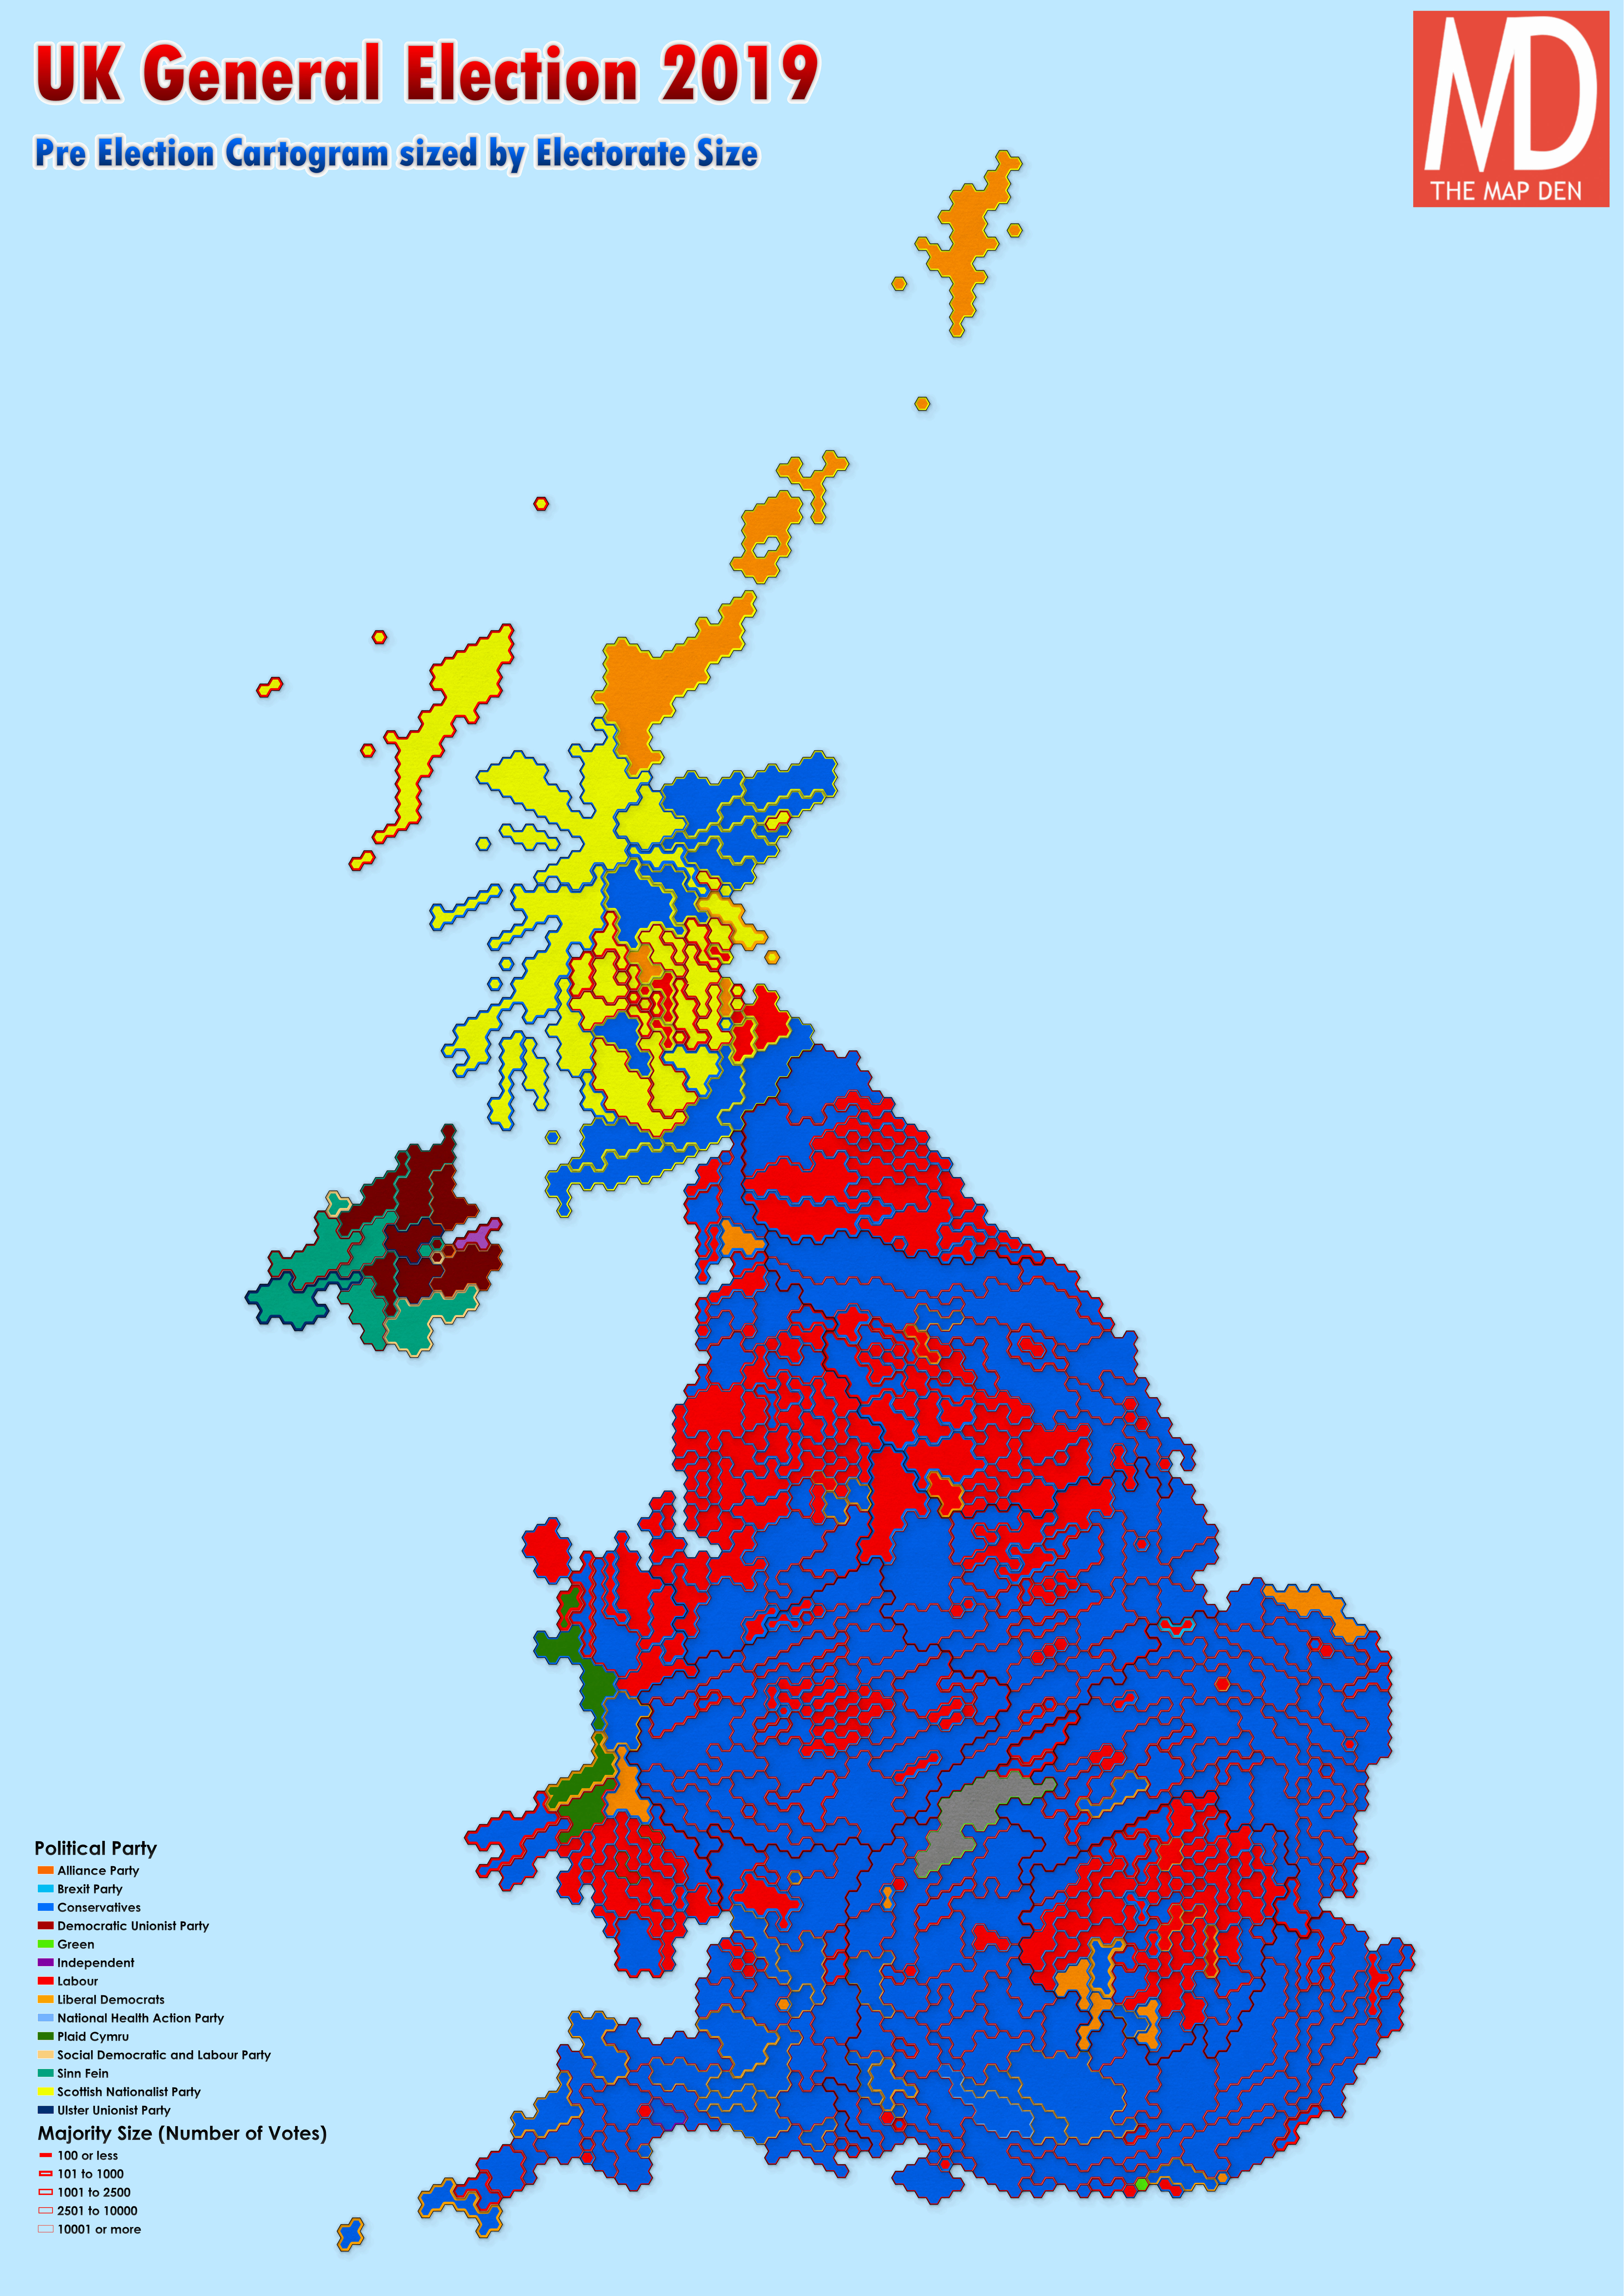 Uk General Election 2019 Maps And Cartograms The Map Den